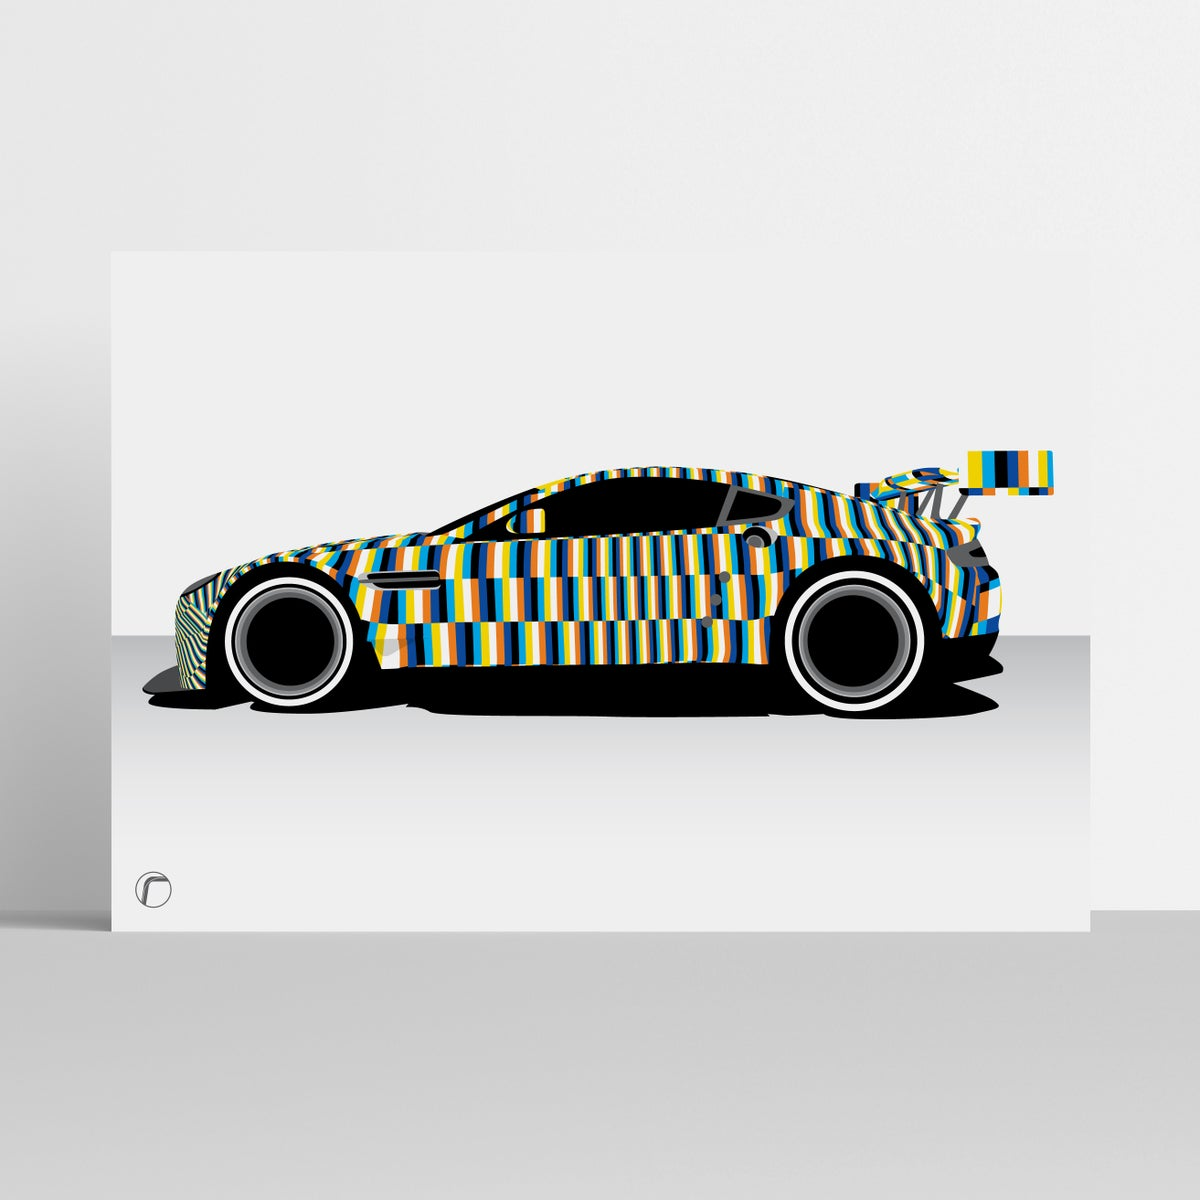 Image of Aston Martin Racing | Tobias Rehberger